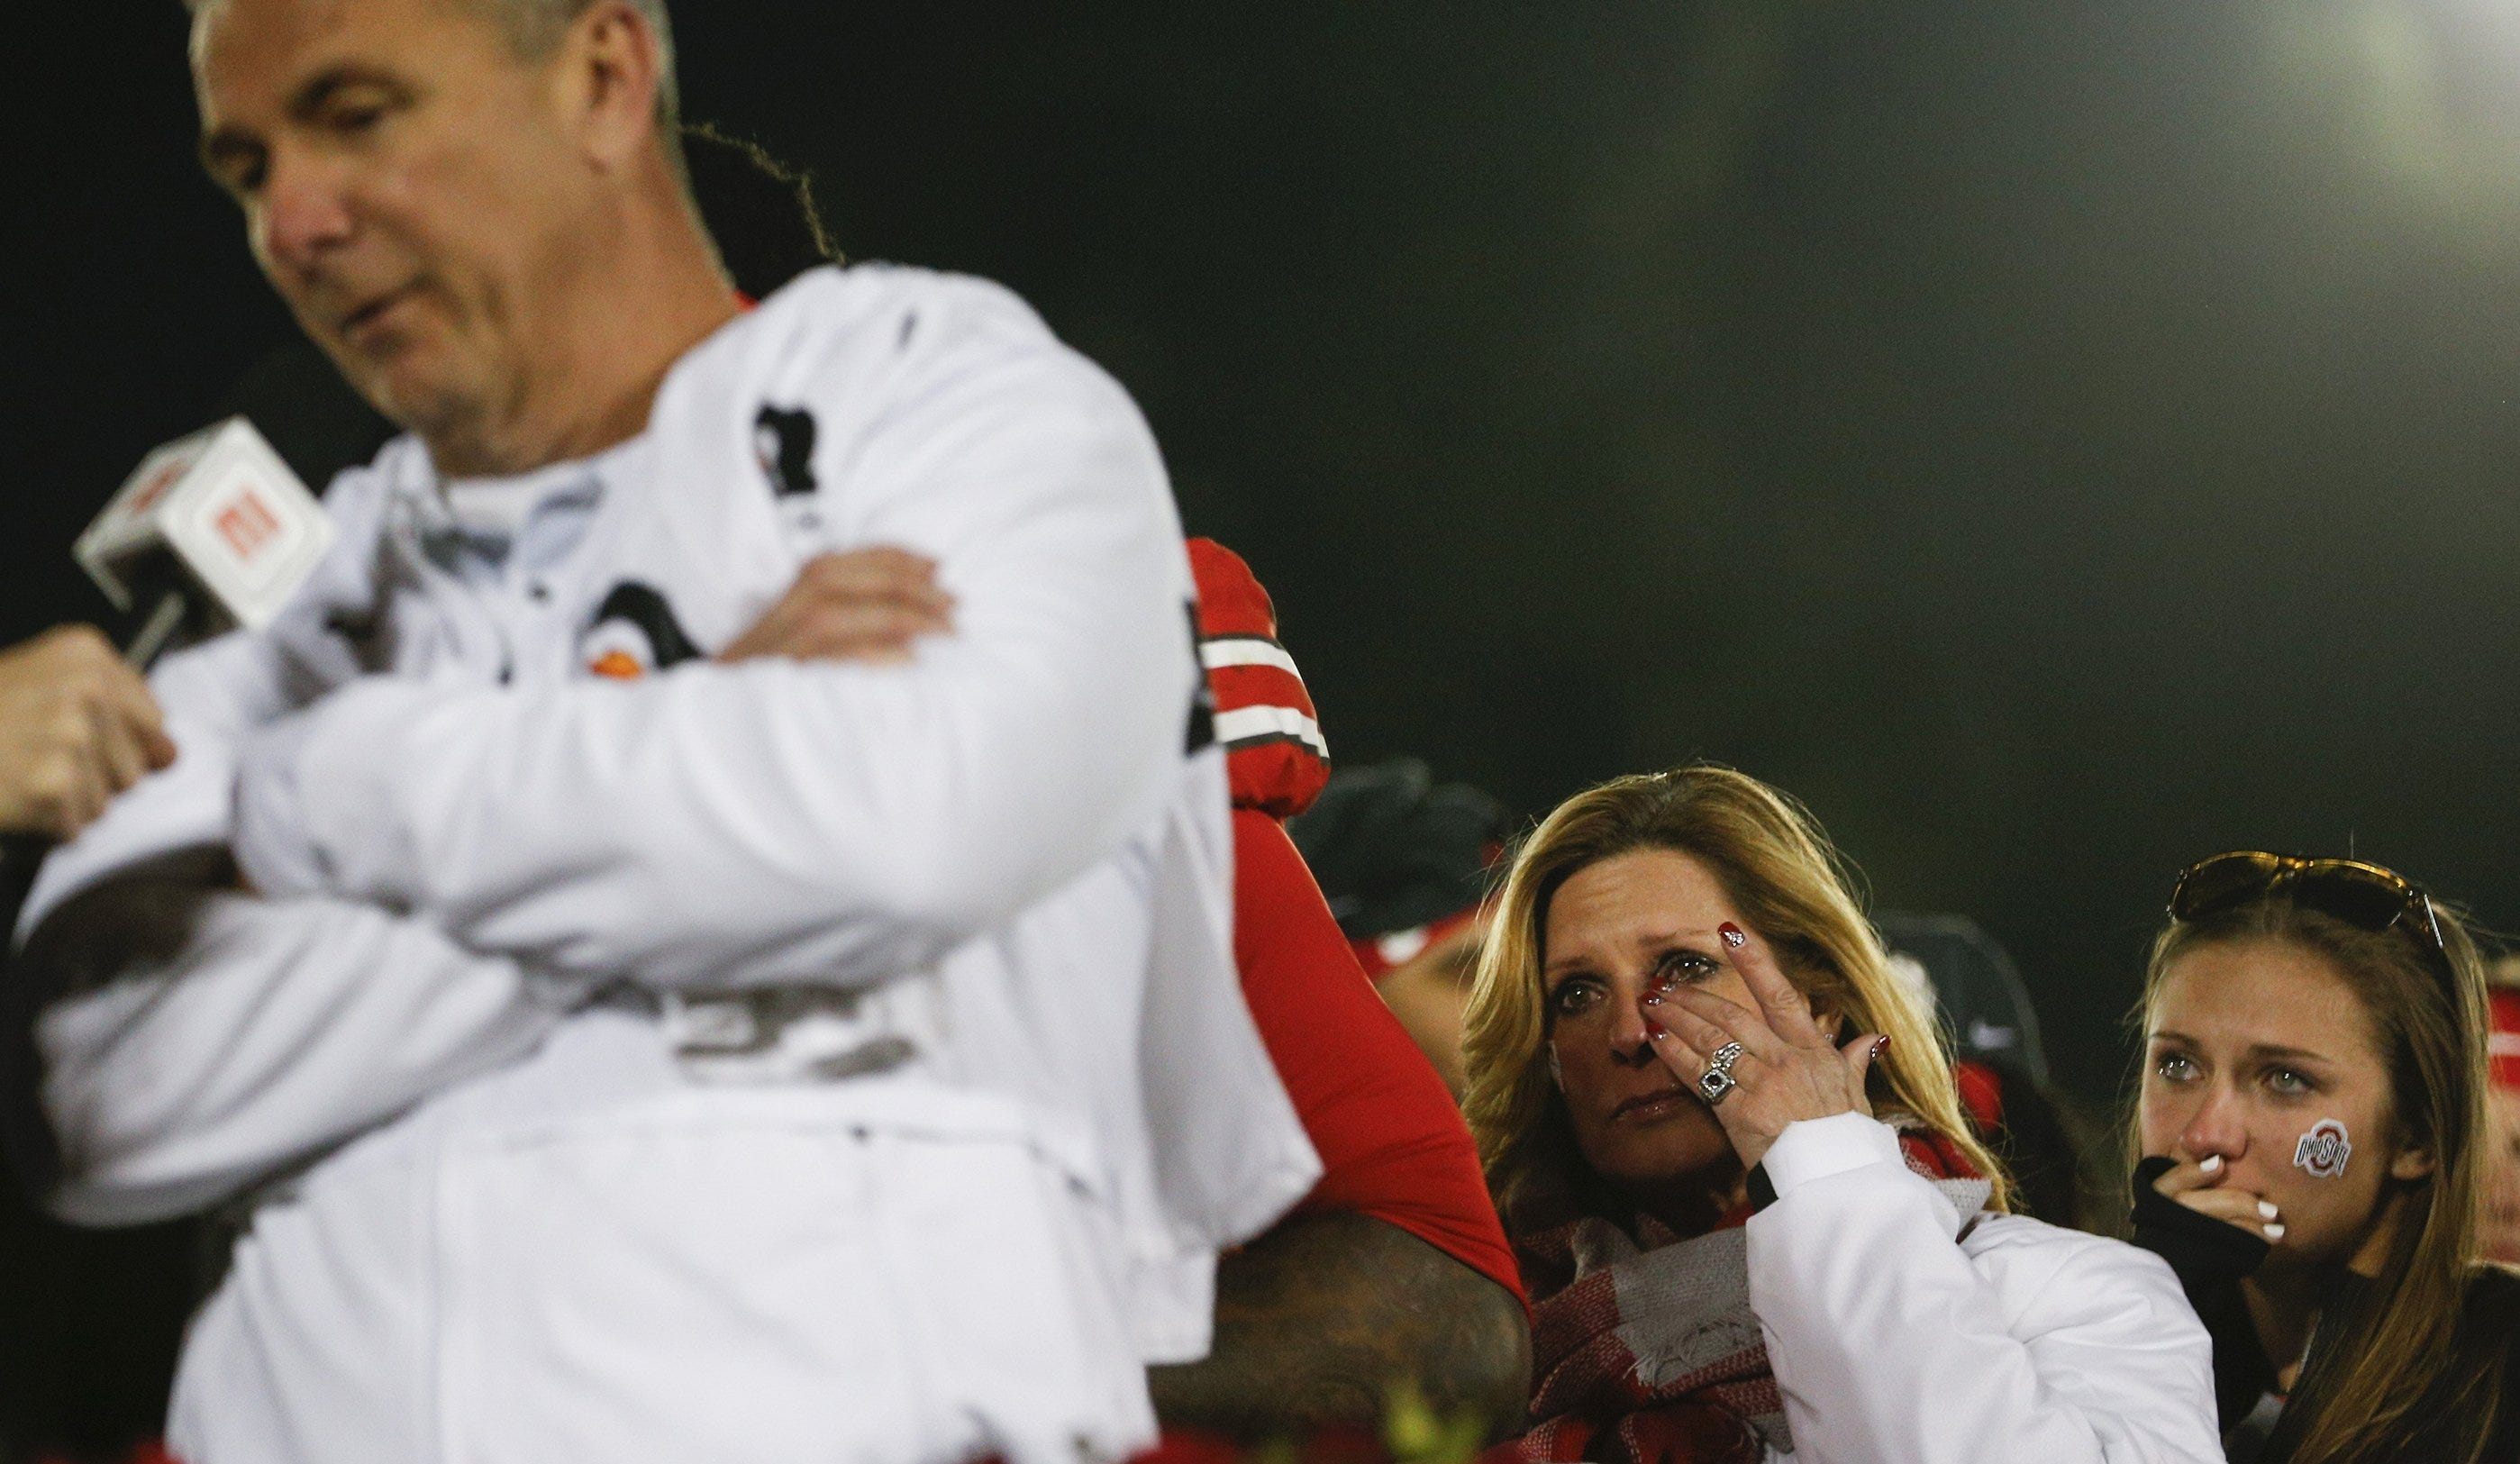 Shelley Meyer, second from right, and Gigi Meyer, right, wipe away tears as Ohio State Buckeyes head coach Urban Meyer speaks on Jan. 1, 2019 at the Rose Bowl in Pasadena, Calif.